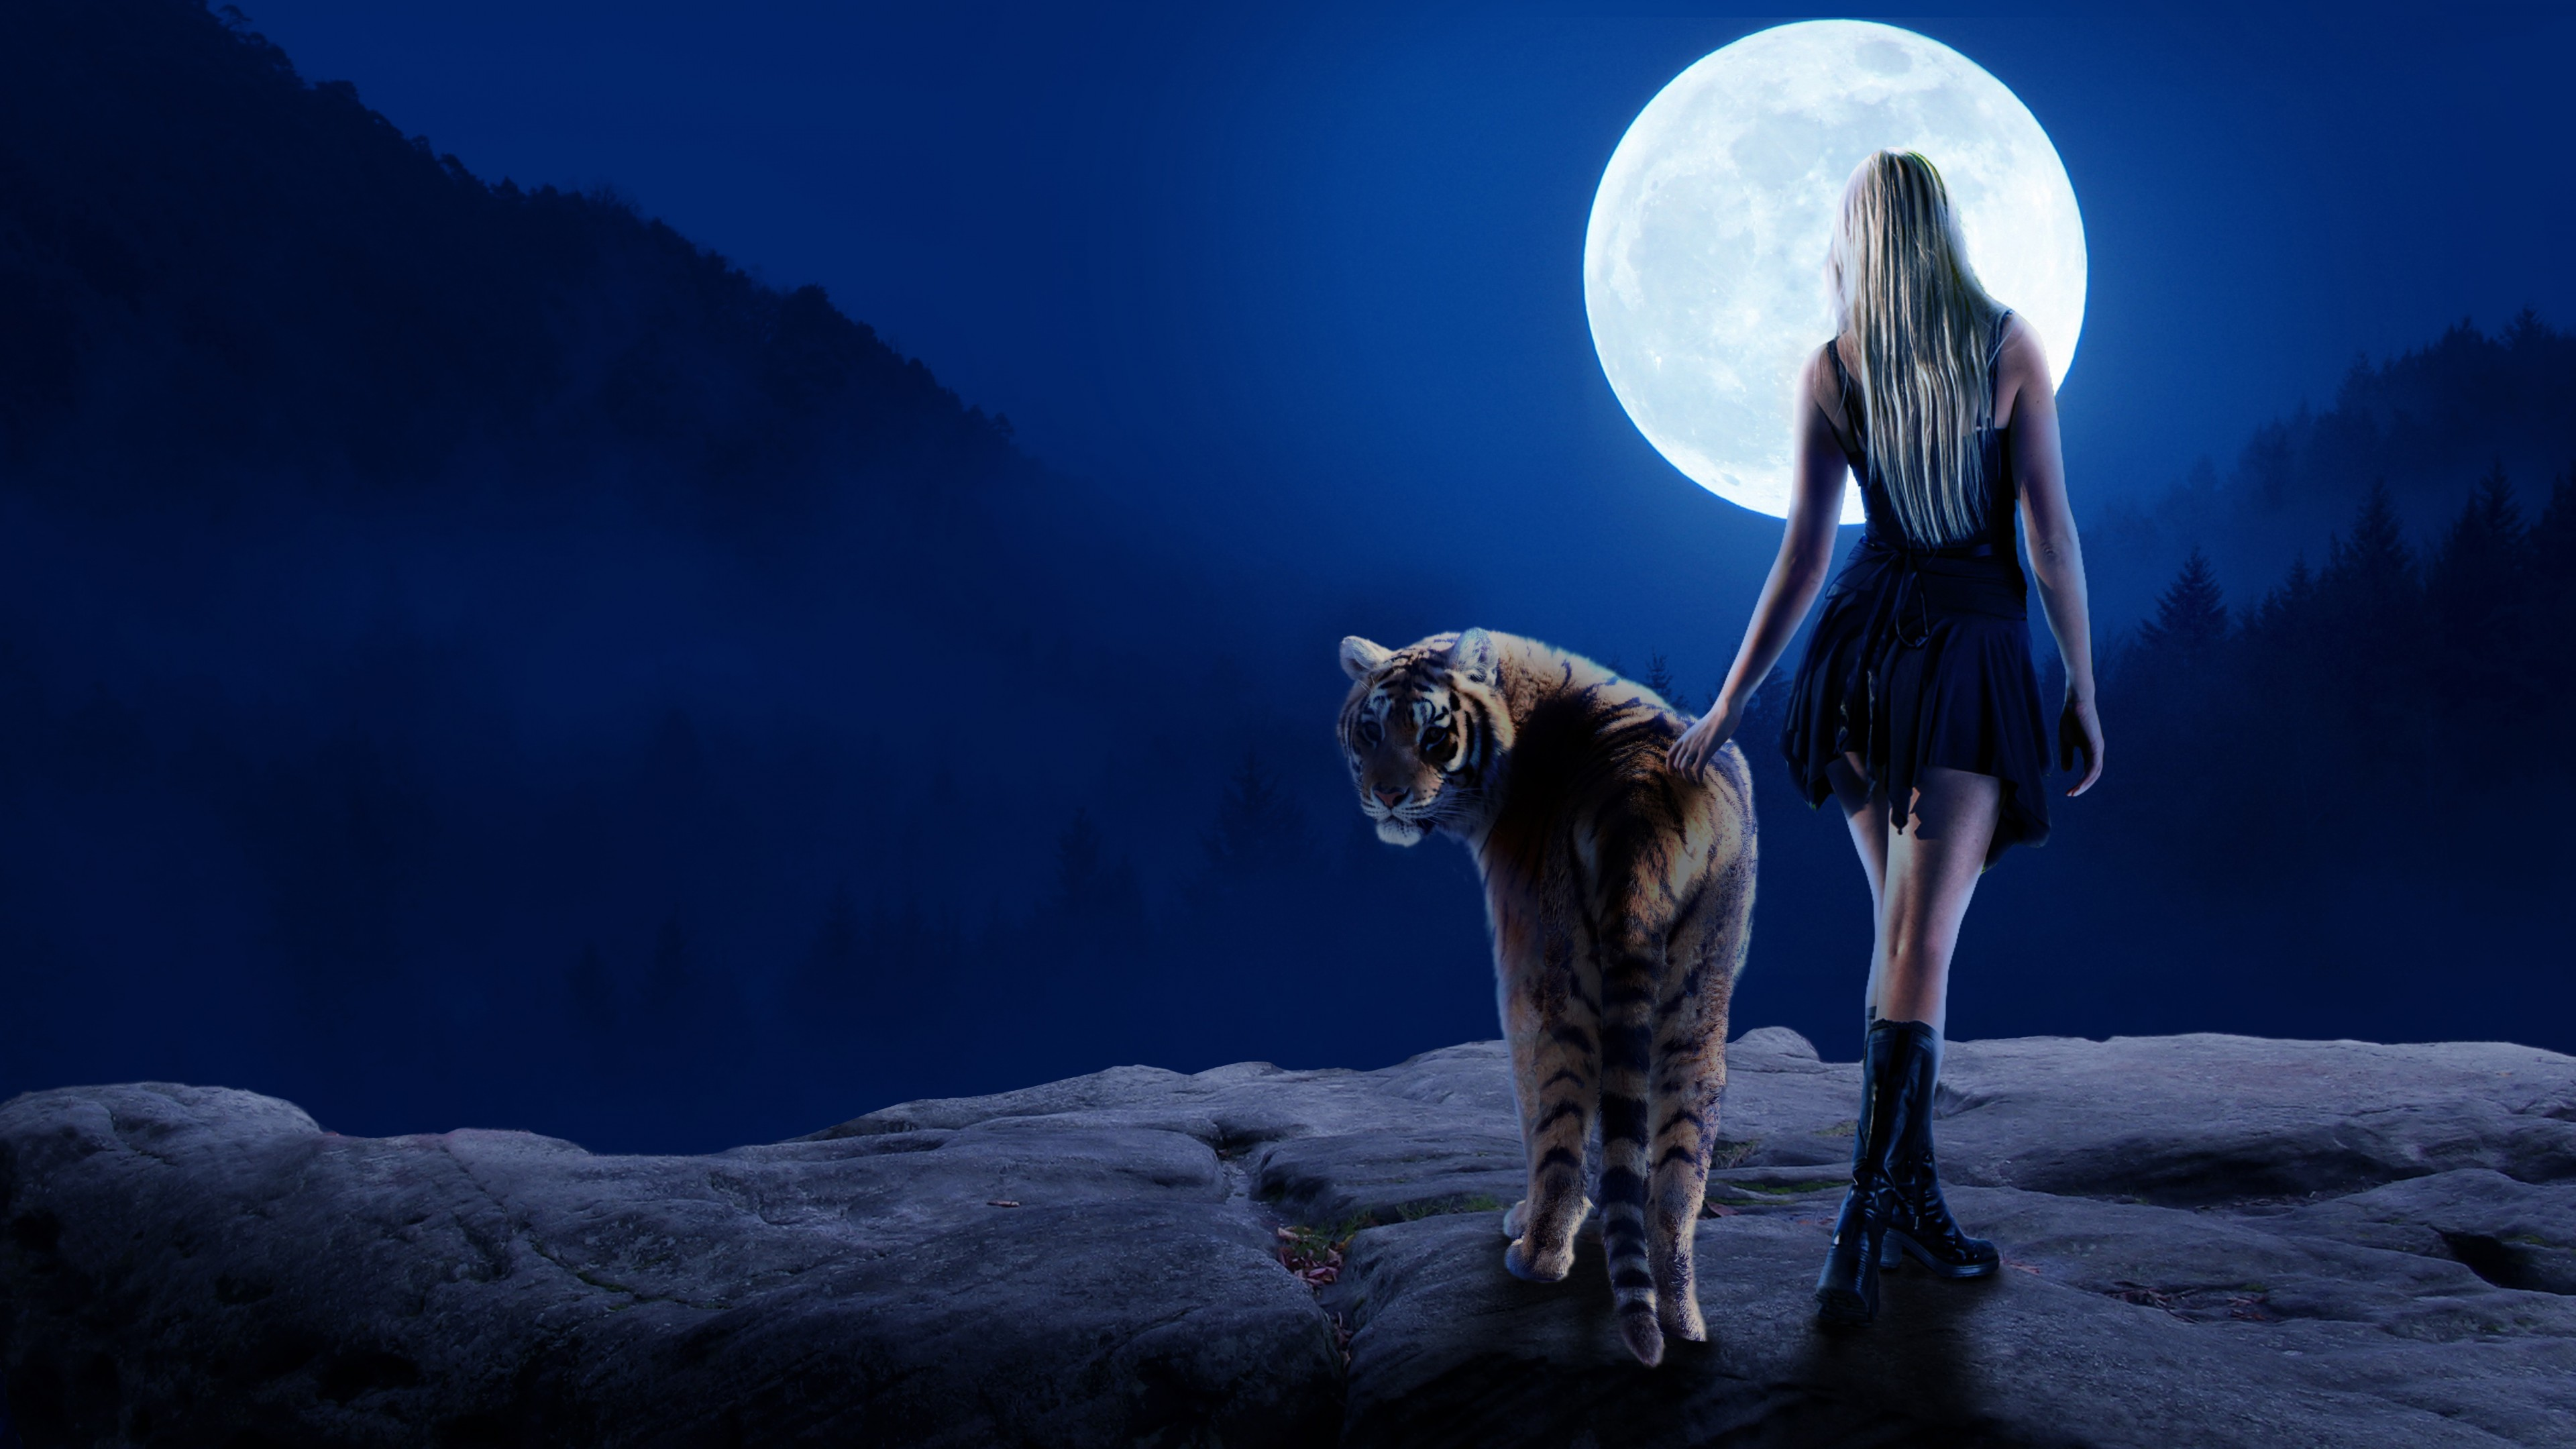 tiger girl moon 4k 1540755656 - Tiger Girl Moon 4k - tiger wallpapers, moon wallpapers, hd-wallpapers, girl wallpapers, artist wallpapers, 4k-wallpapers